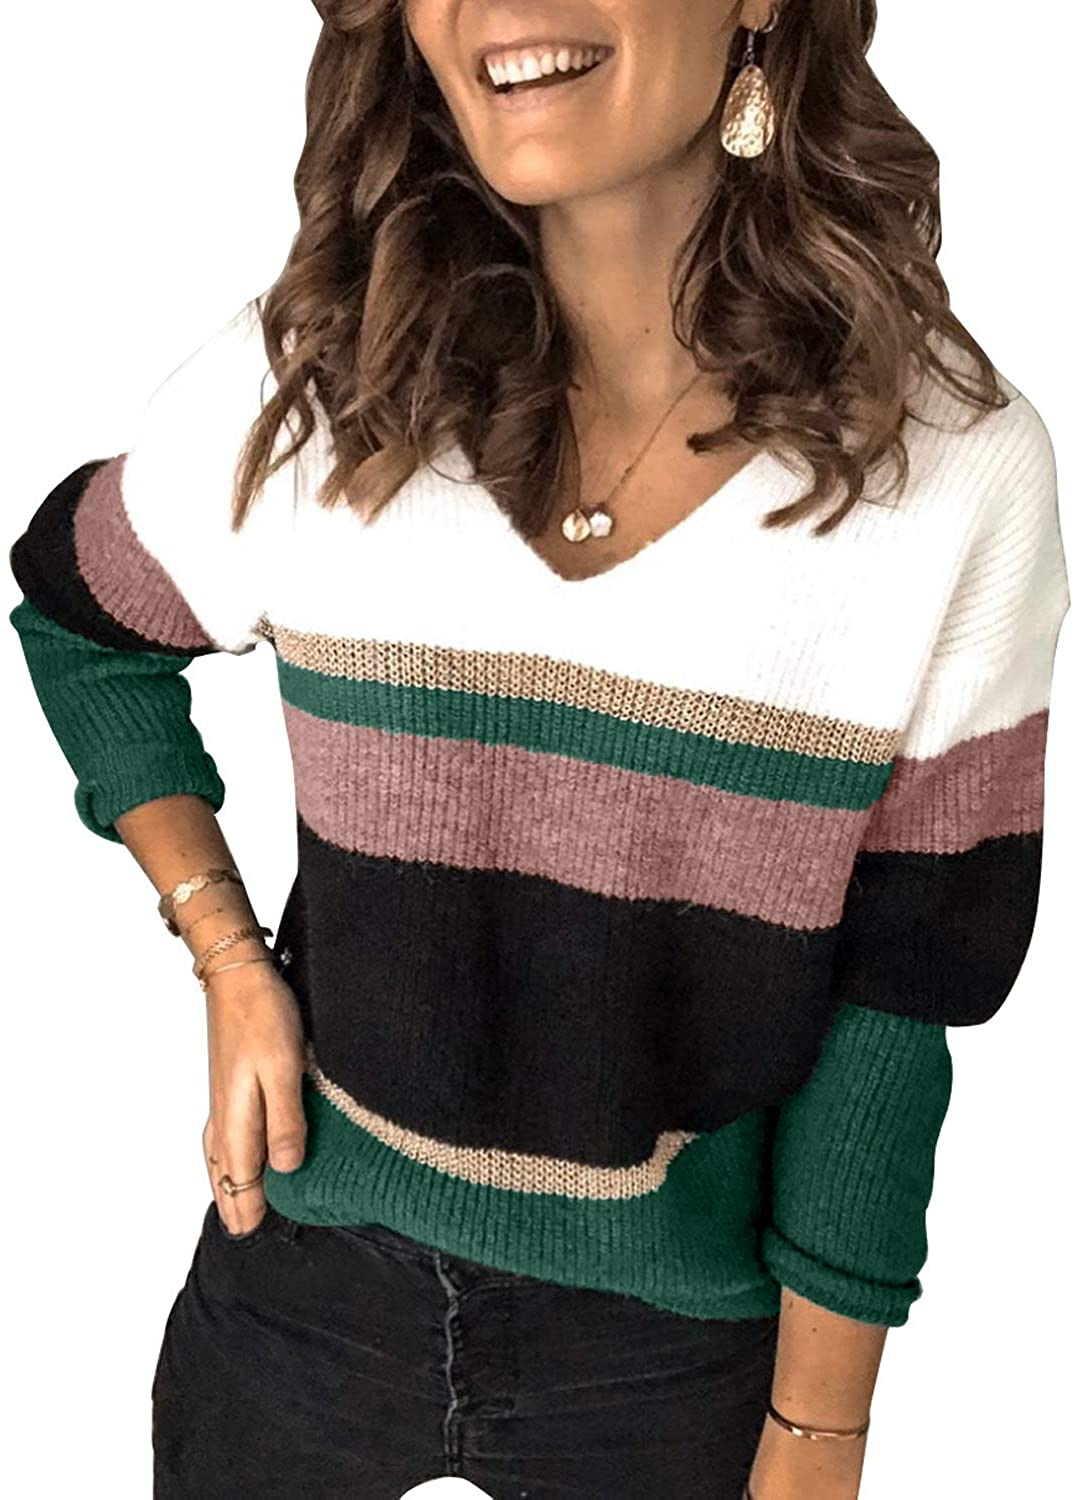 CORAFRITZ Women's Winter Casual Loose Long Sleeve V Neck Color Block Striped Slouchy Warm Jumper Sweater